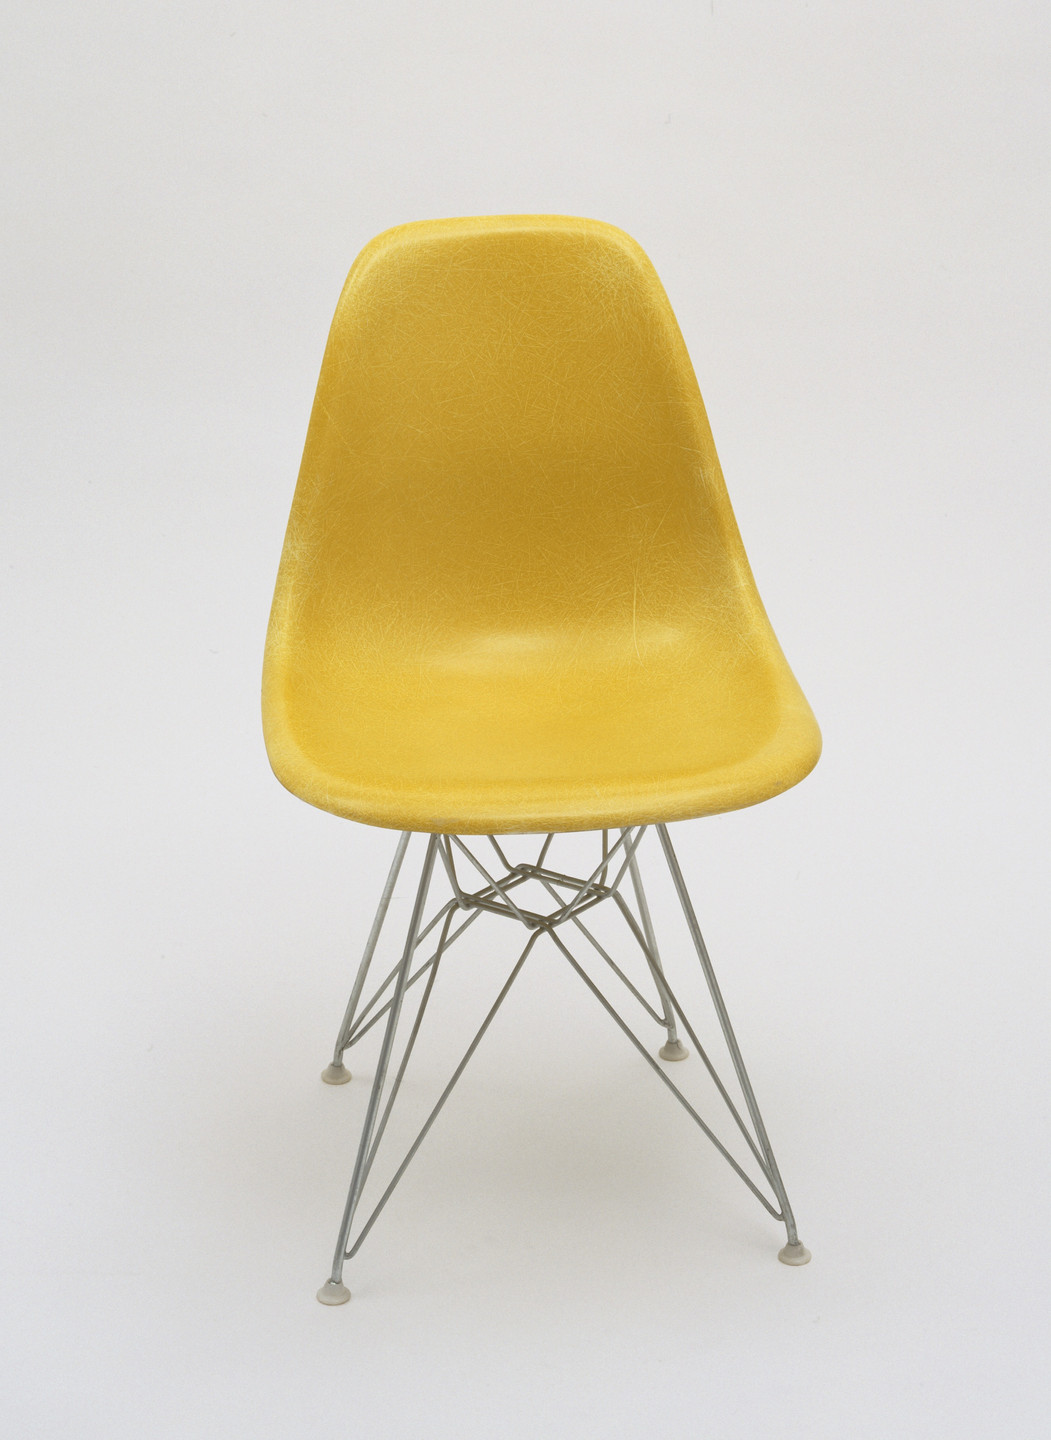 Charles Eames, Ray Eames. Side Chair. 1950